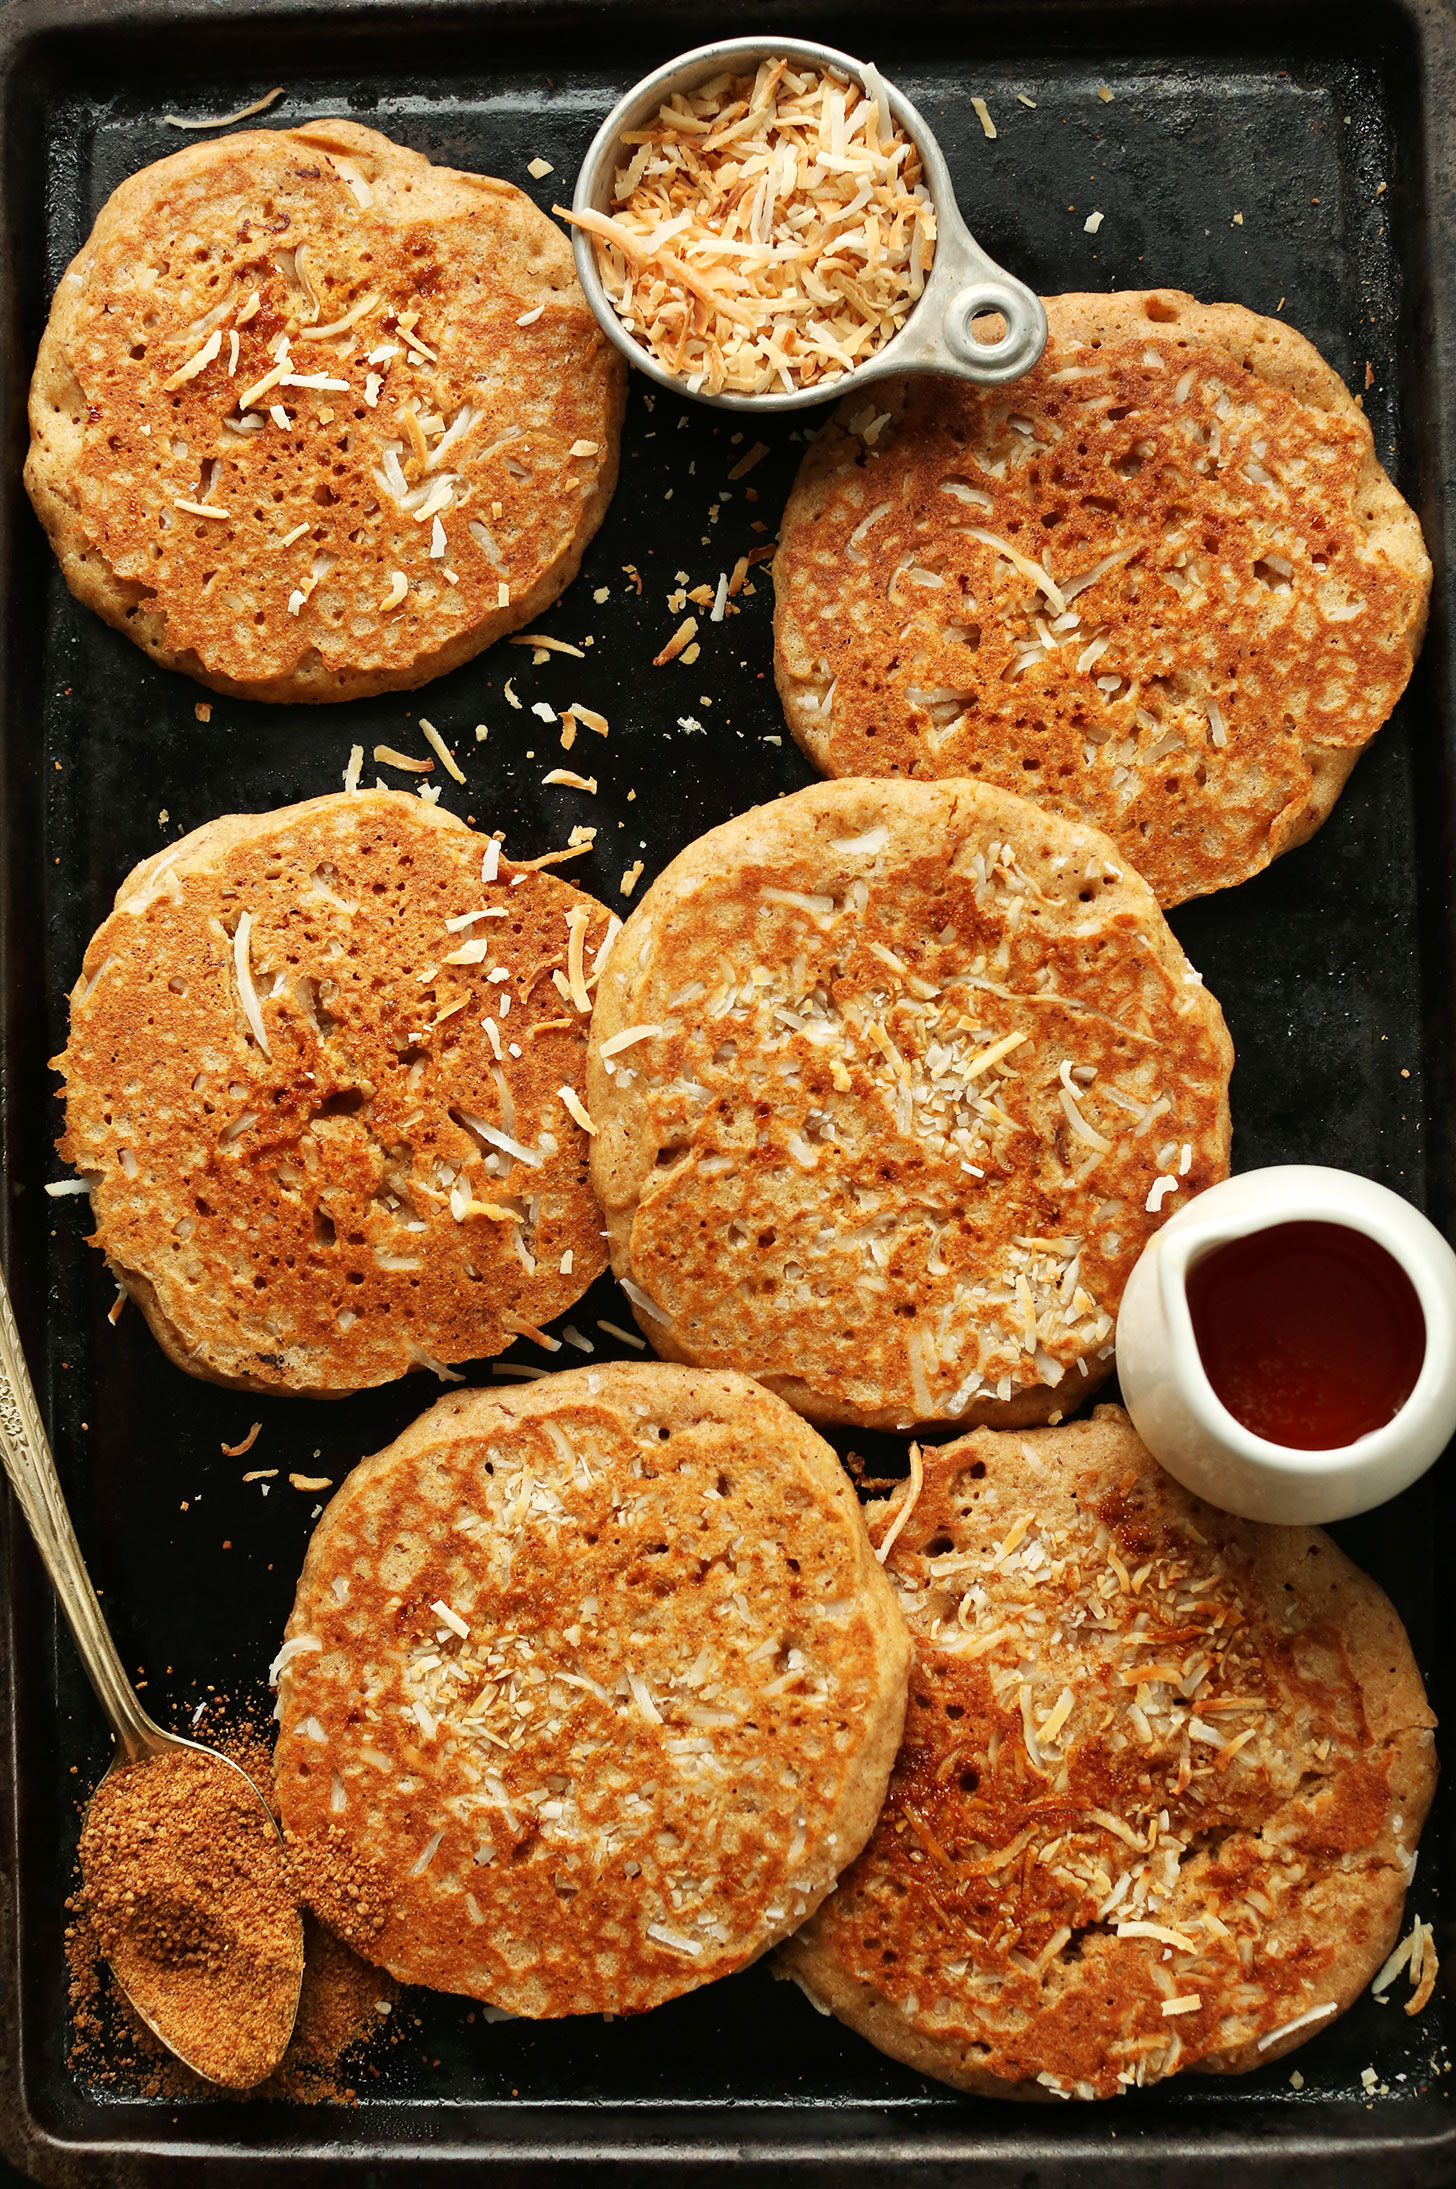 THE BEST VEGAN Toasted Coconut Pancakes aka Better Than Sex PANCAKES! So delicious, fluffy, and coconutty. #vegan #breakfast #pancakes #recipe #minimalistbaker